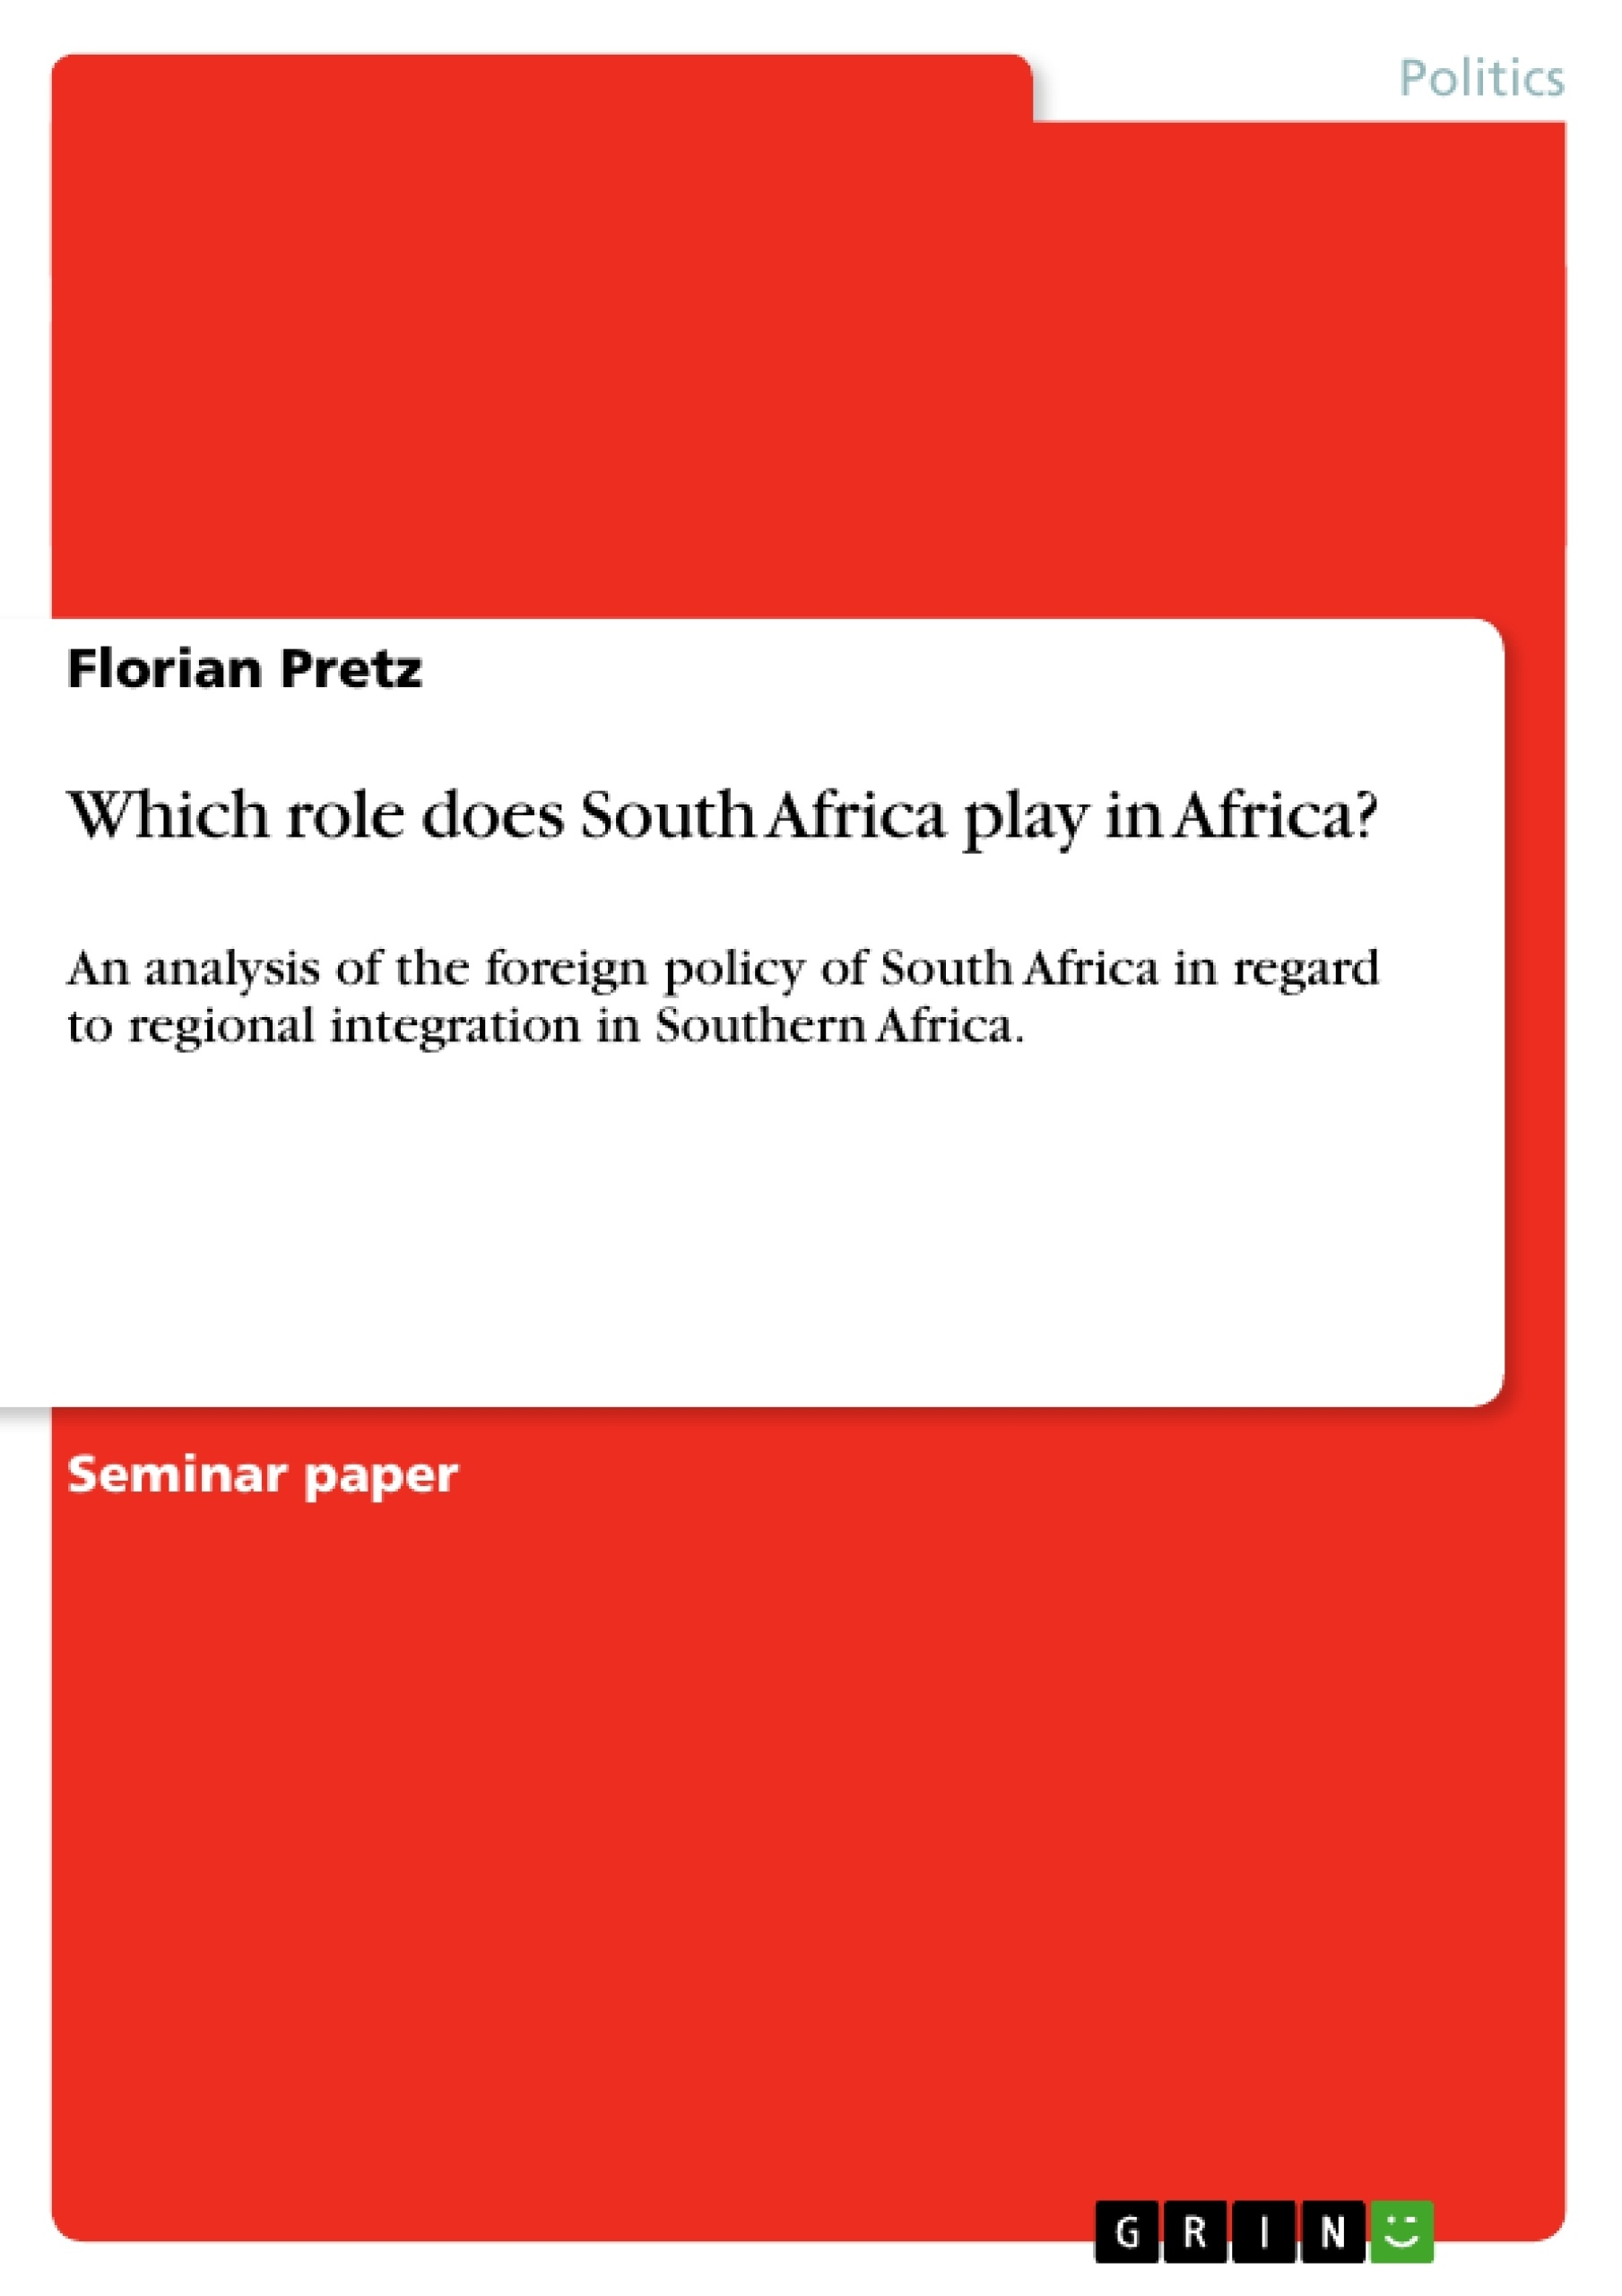 Title: Which role does South Africa play in Africa?